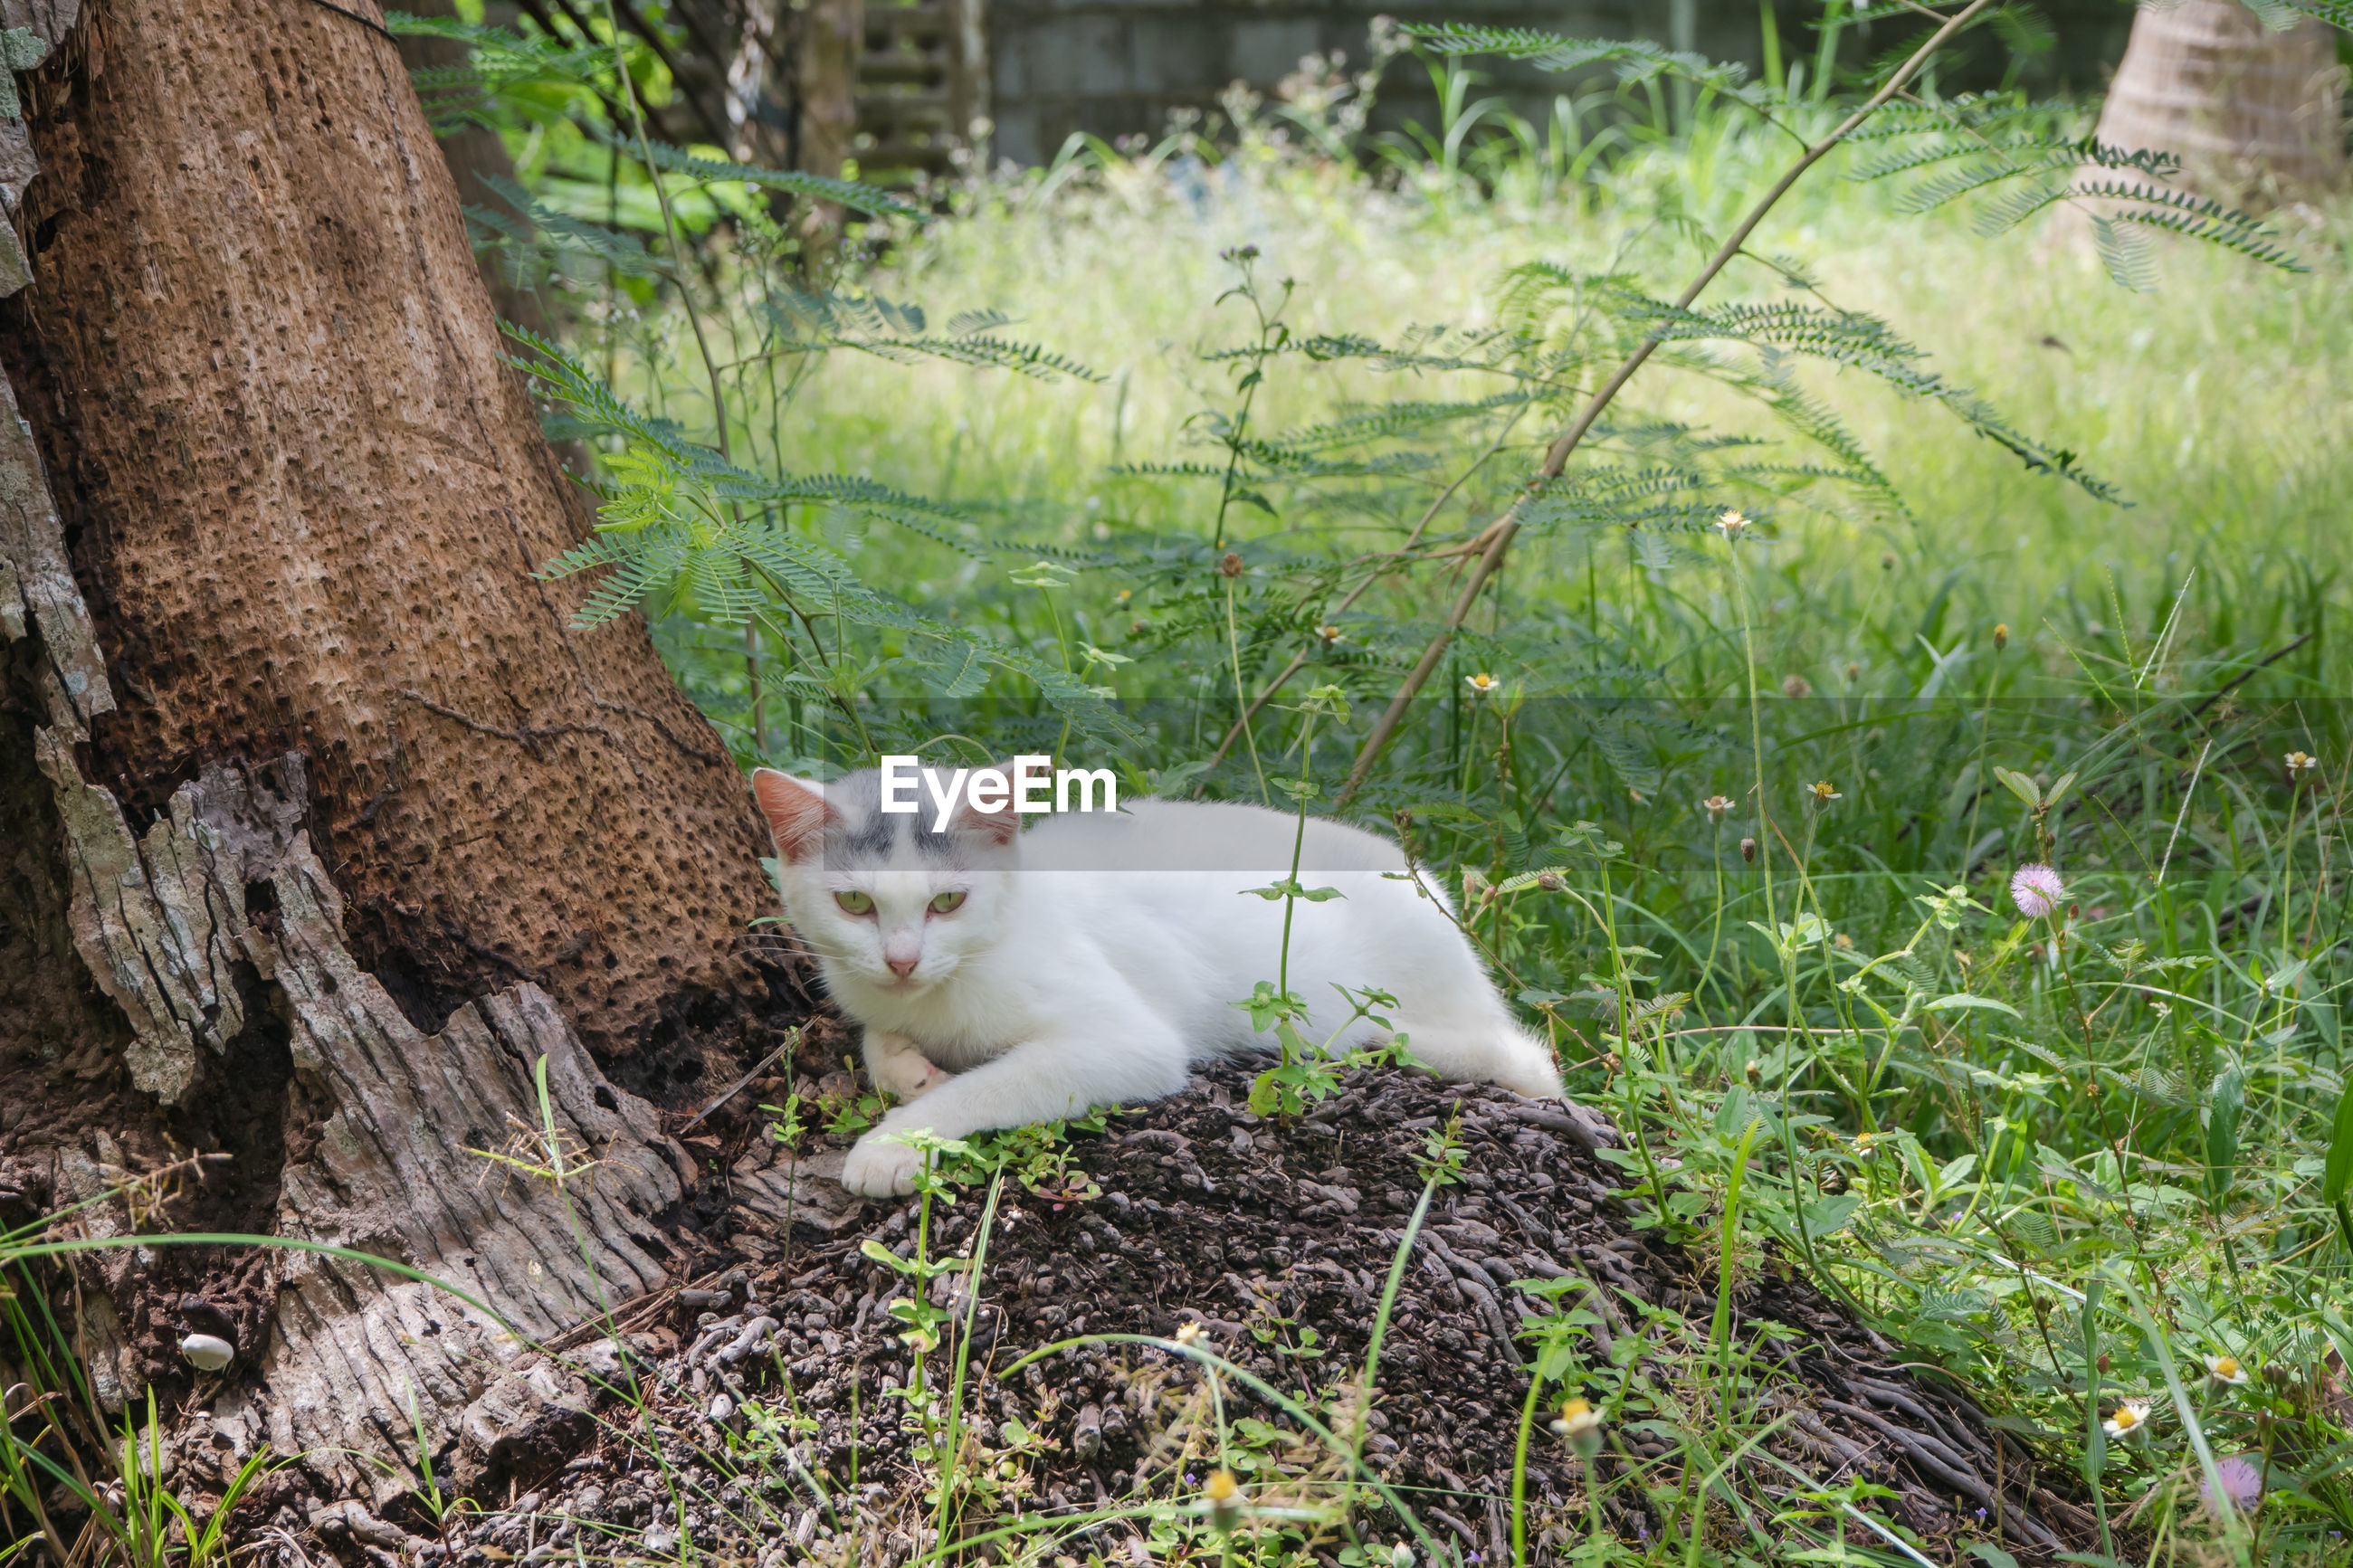 VIEW OF A CAT LYING ON GRASS